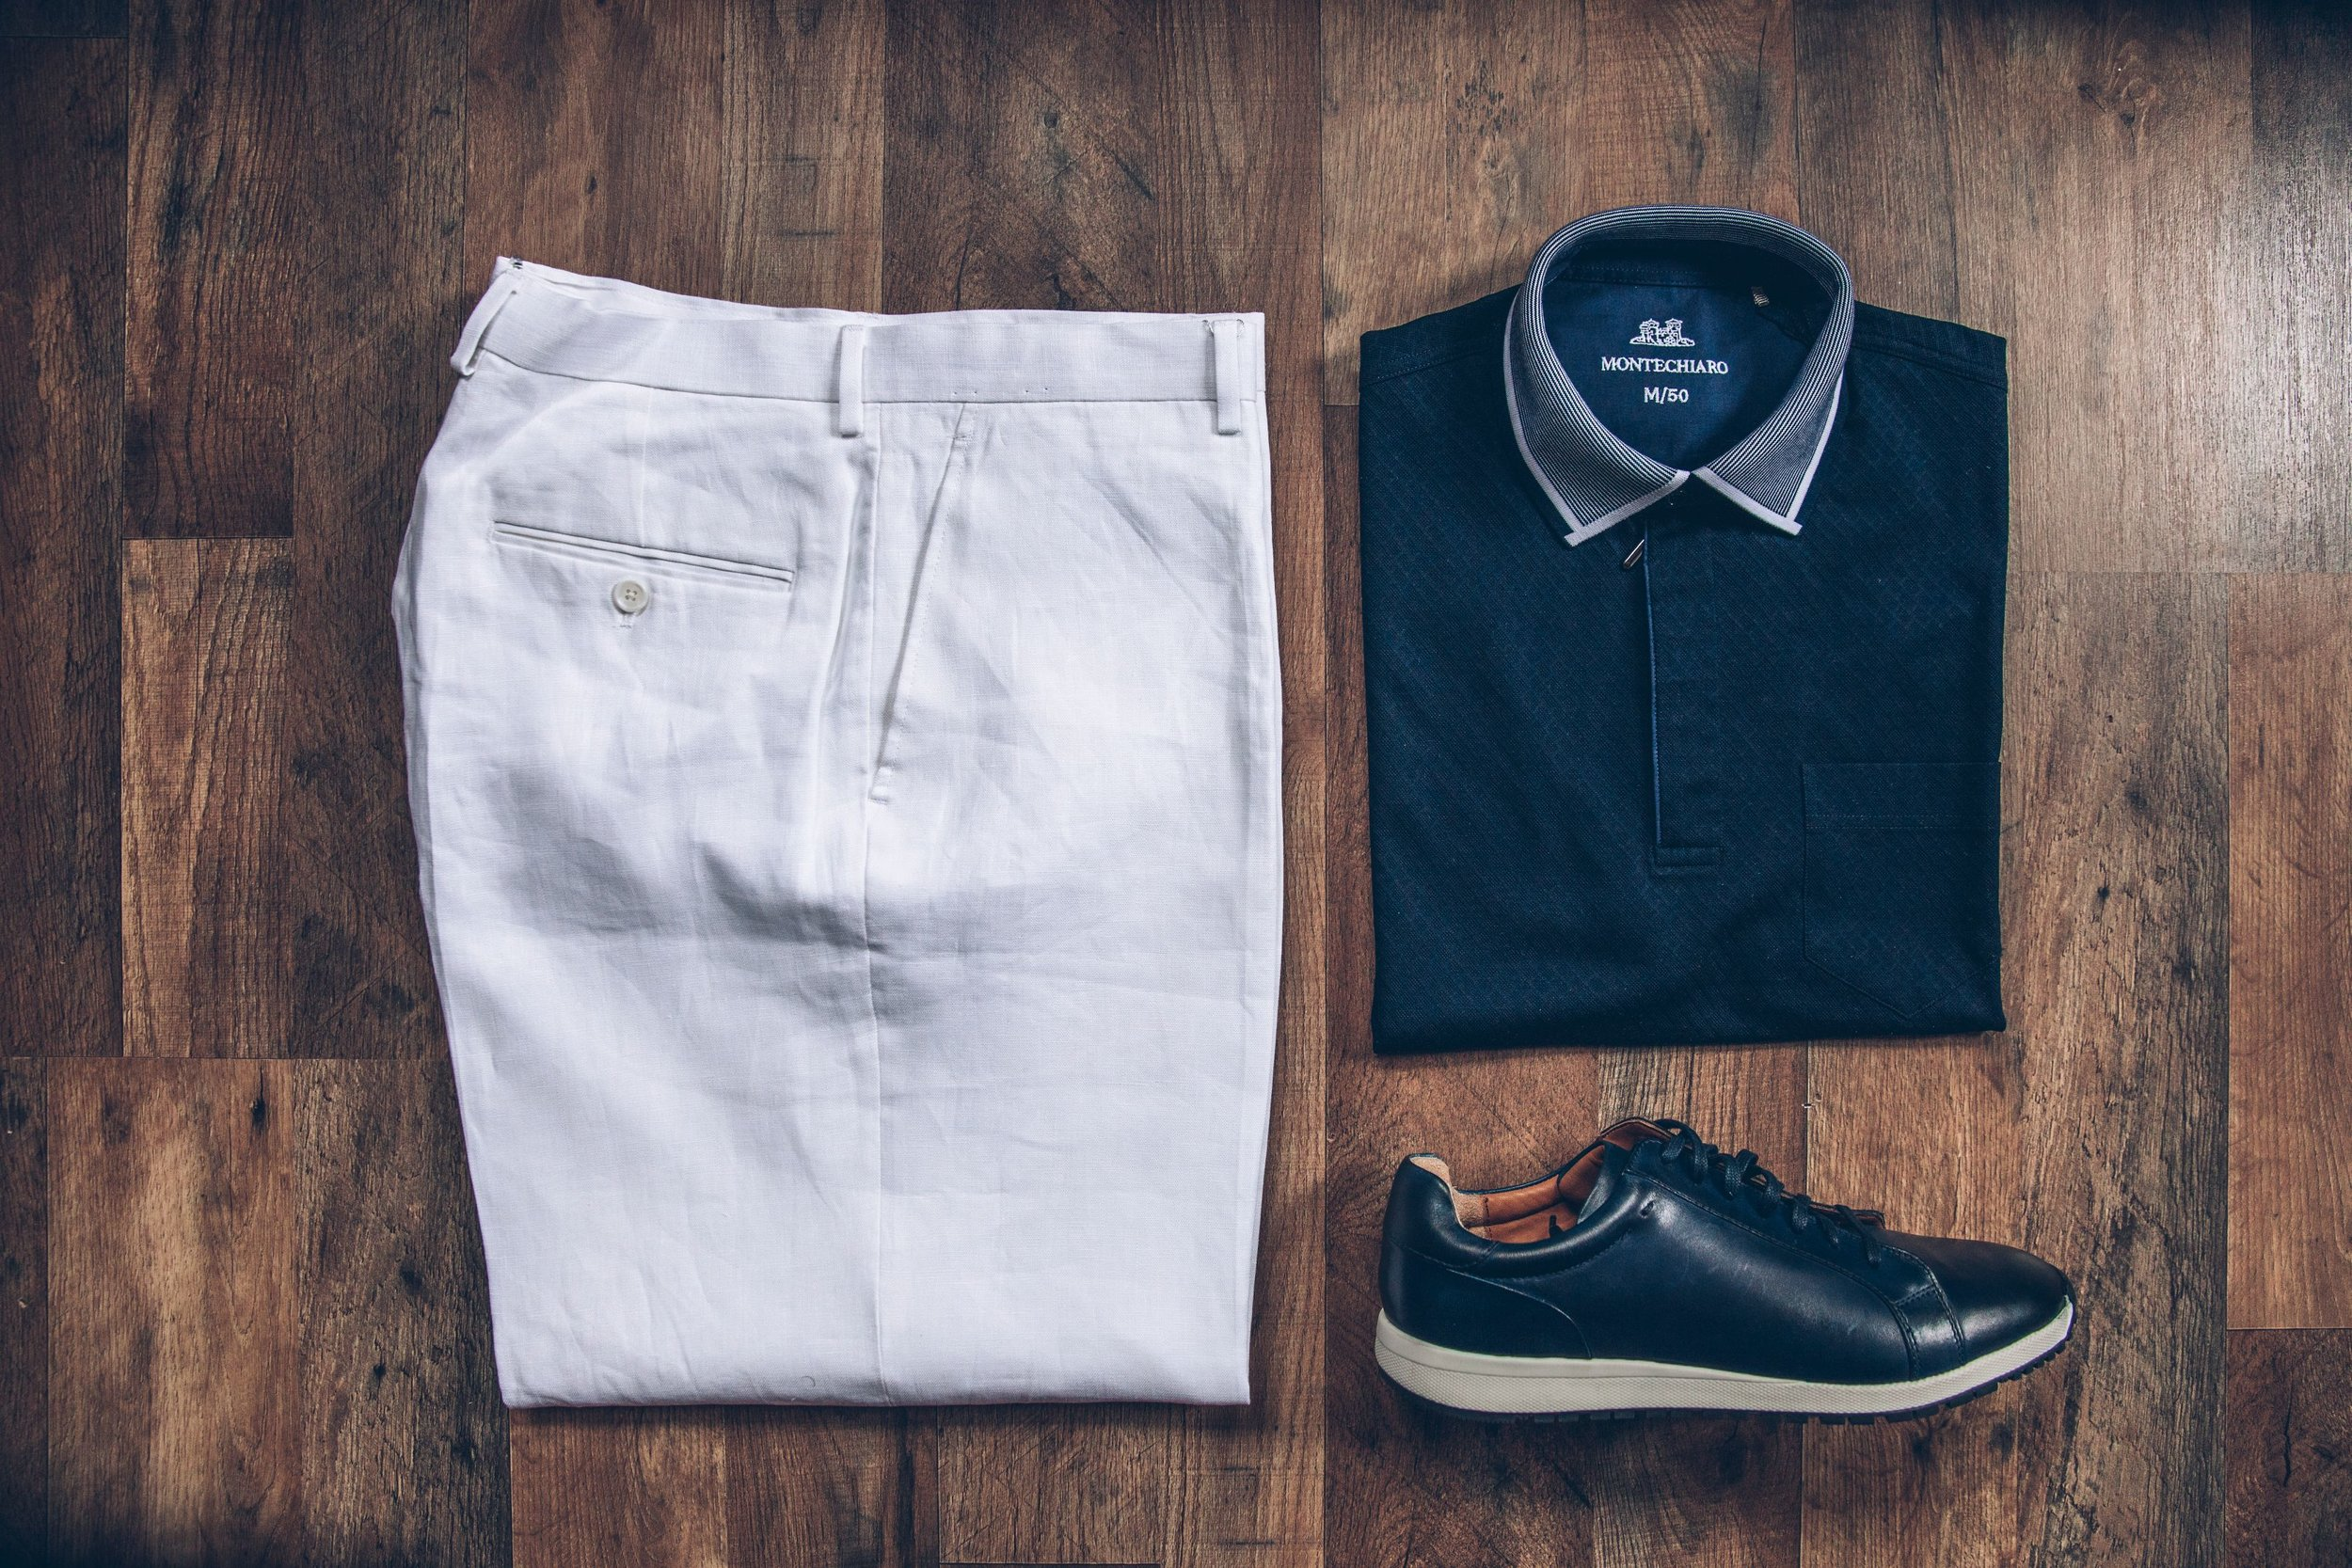 Men's Chinos and Polo Shirt